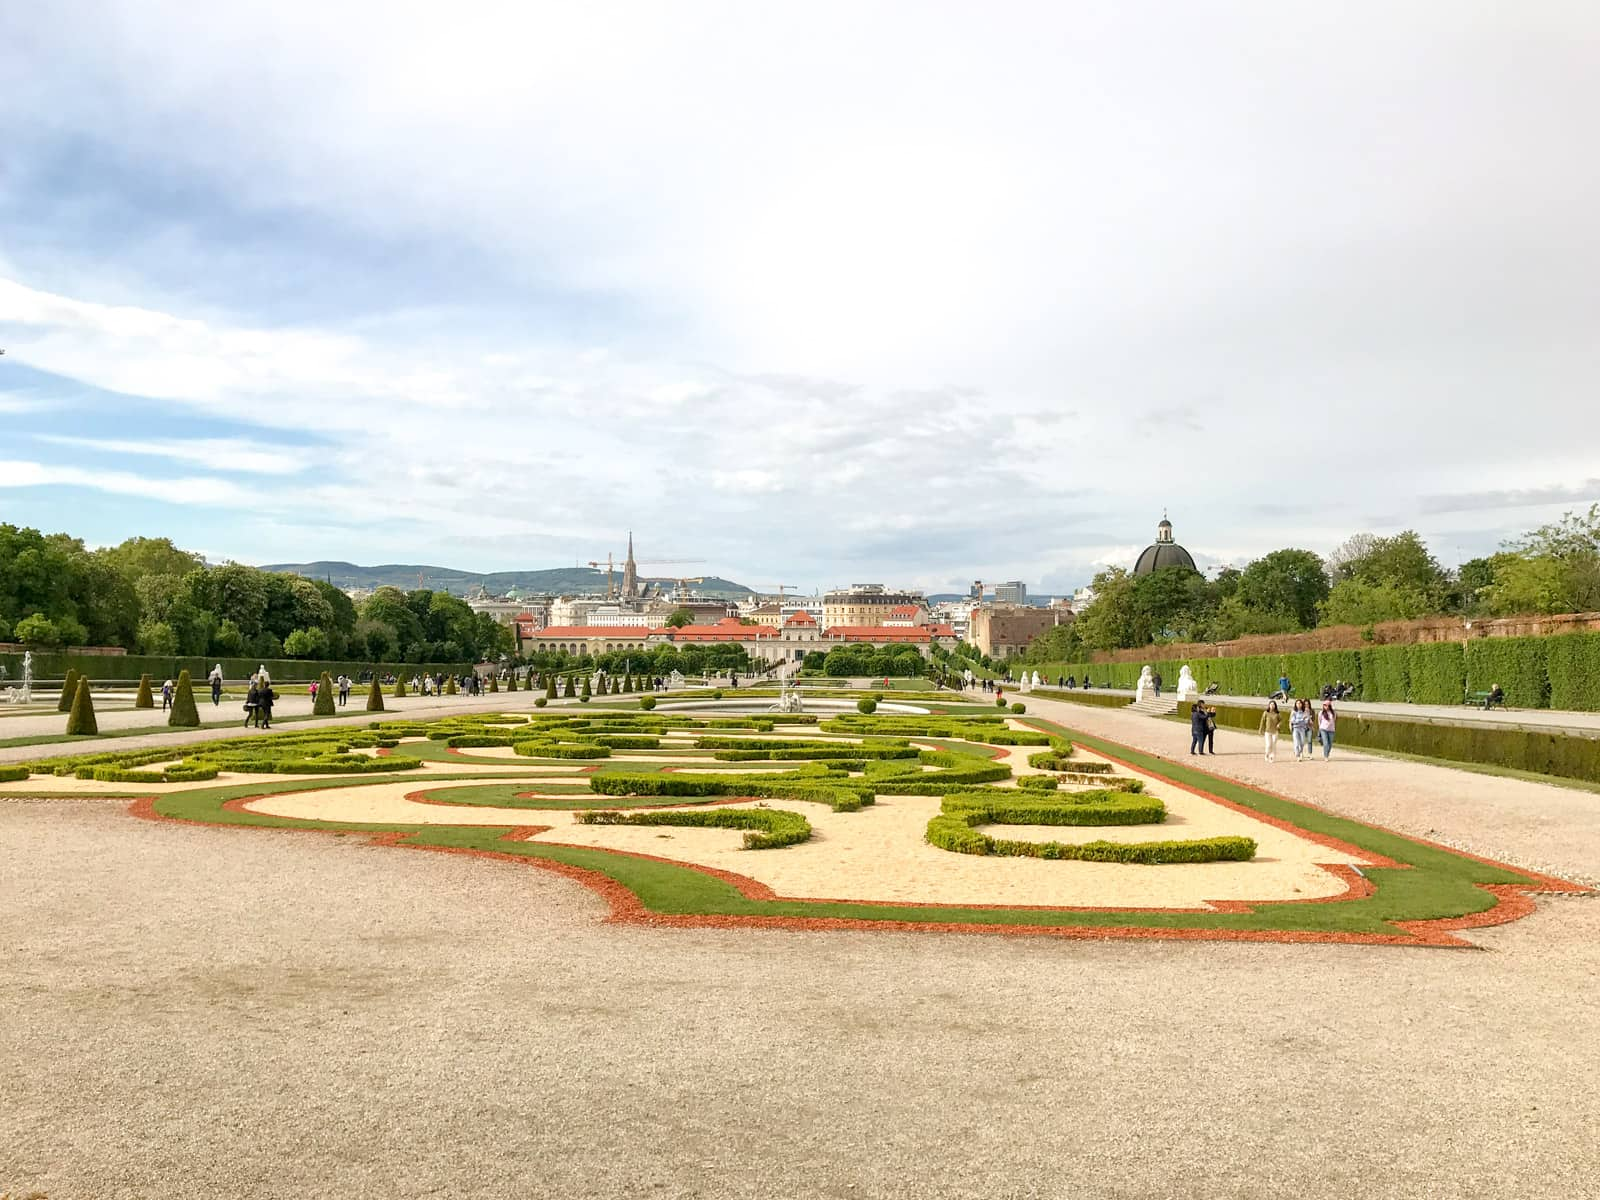 The grounds of Schlössgarten, showing some of the patterns created with small hedges. Wide gravel areas to the sides allow visitors to walk around the grounds